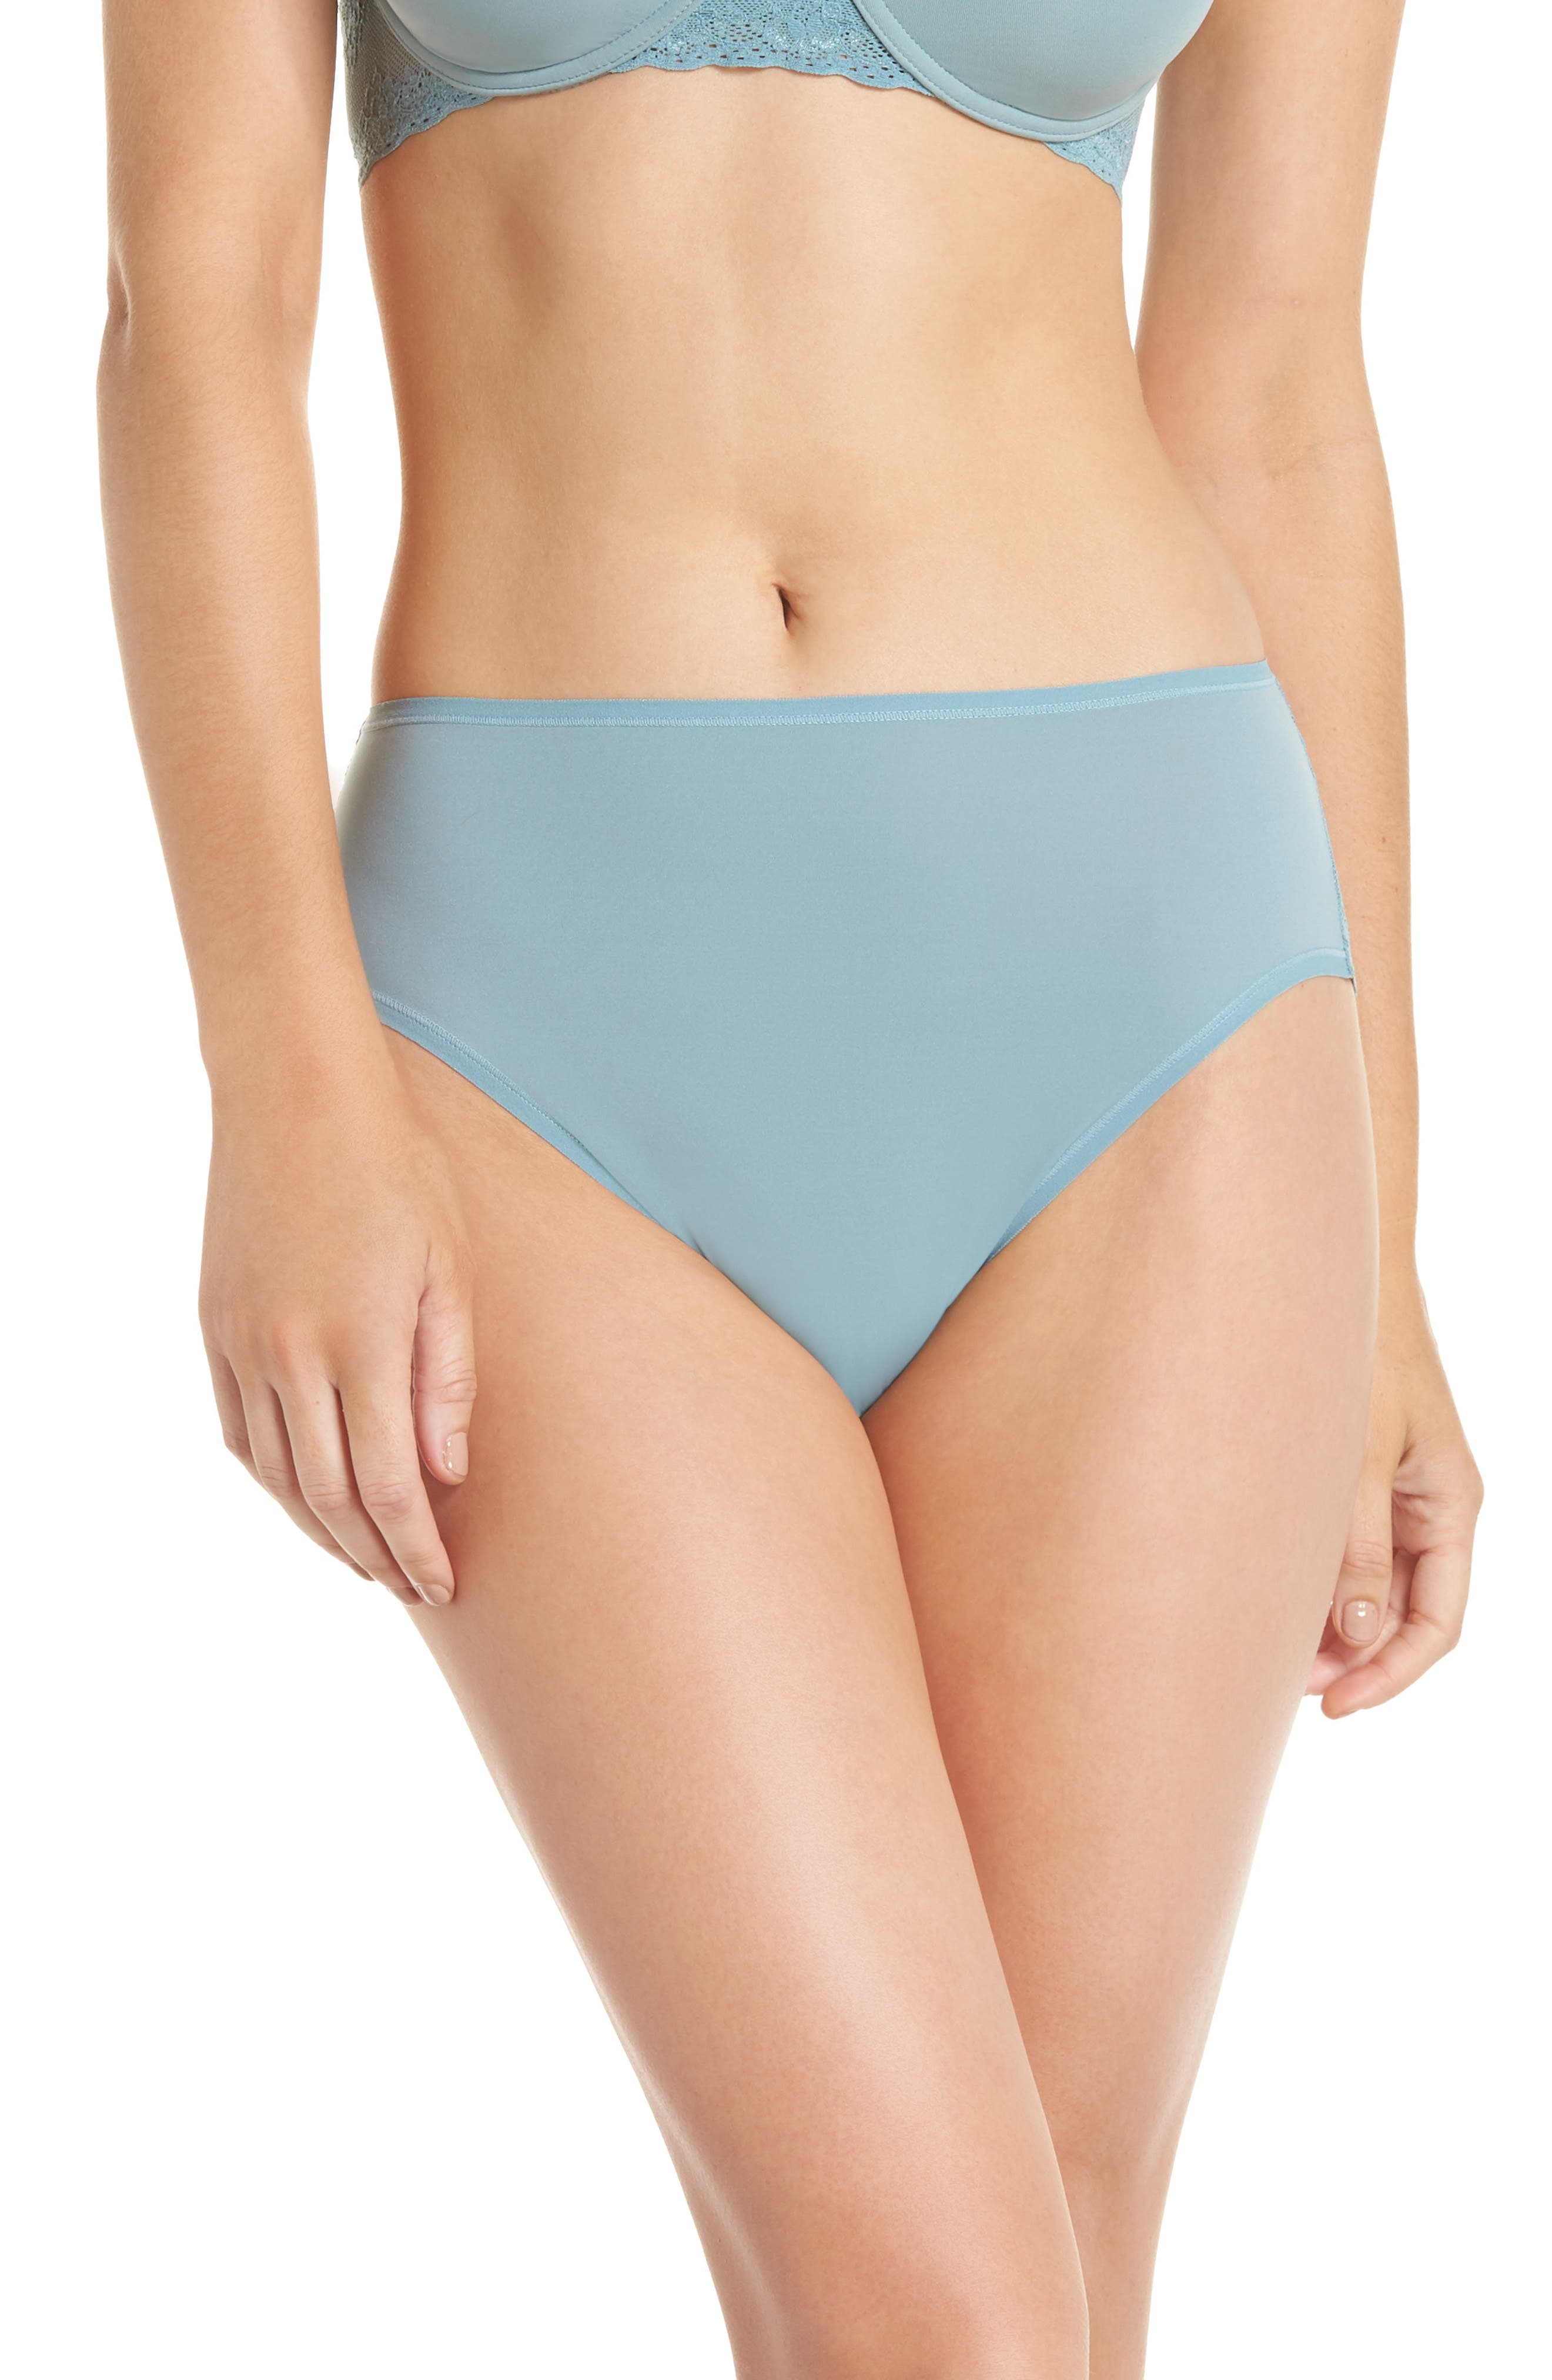 Bliss Perfection French Cut Briefs,                             Main thumbnail 1, color,                             SMOKE BLUE